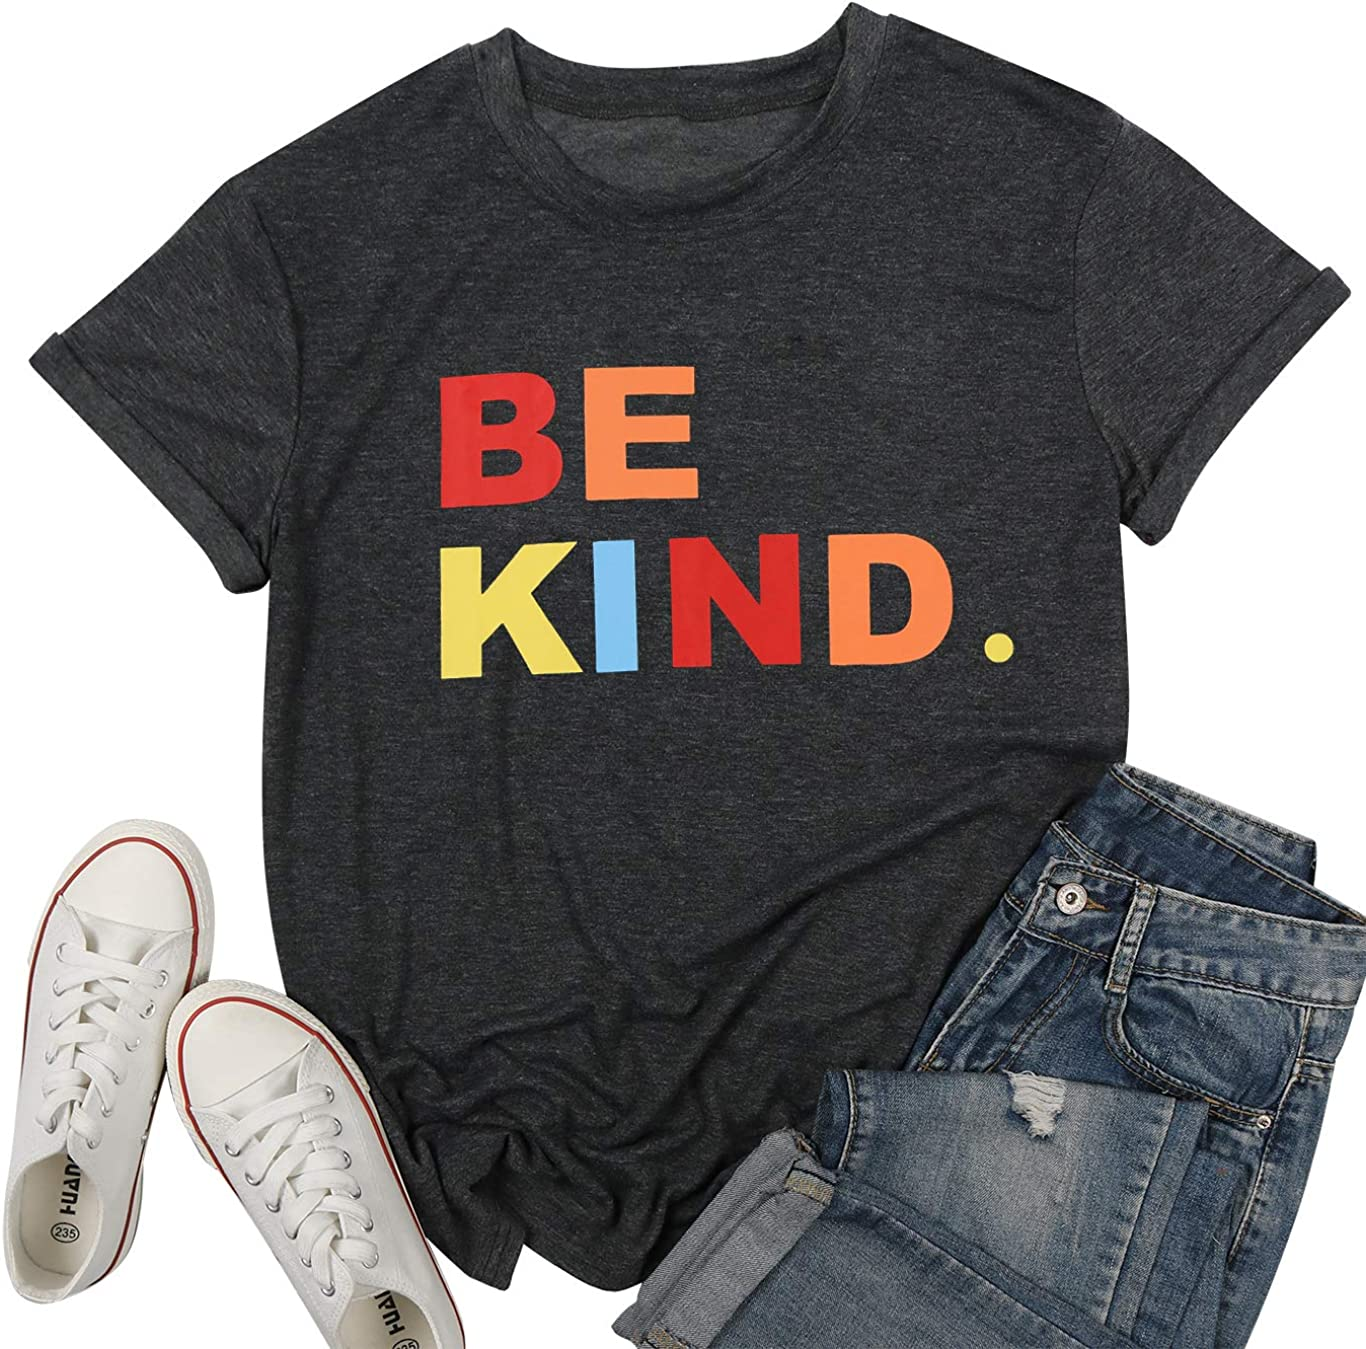 Be Kind Shirt Women Teacher T-Shirt Cute Colorful Tee Inspirational Blouse Summer Comfy Clothes